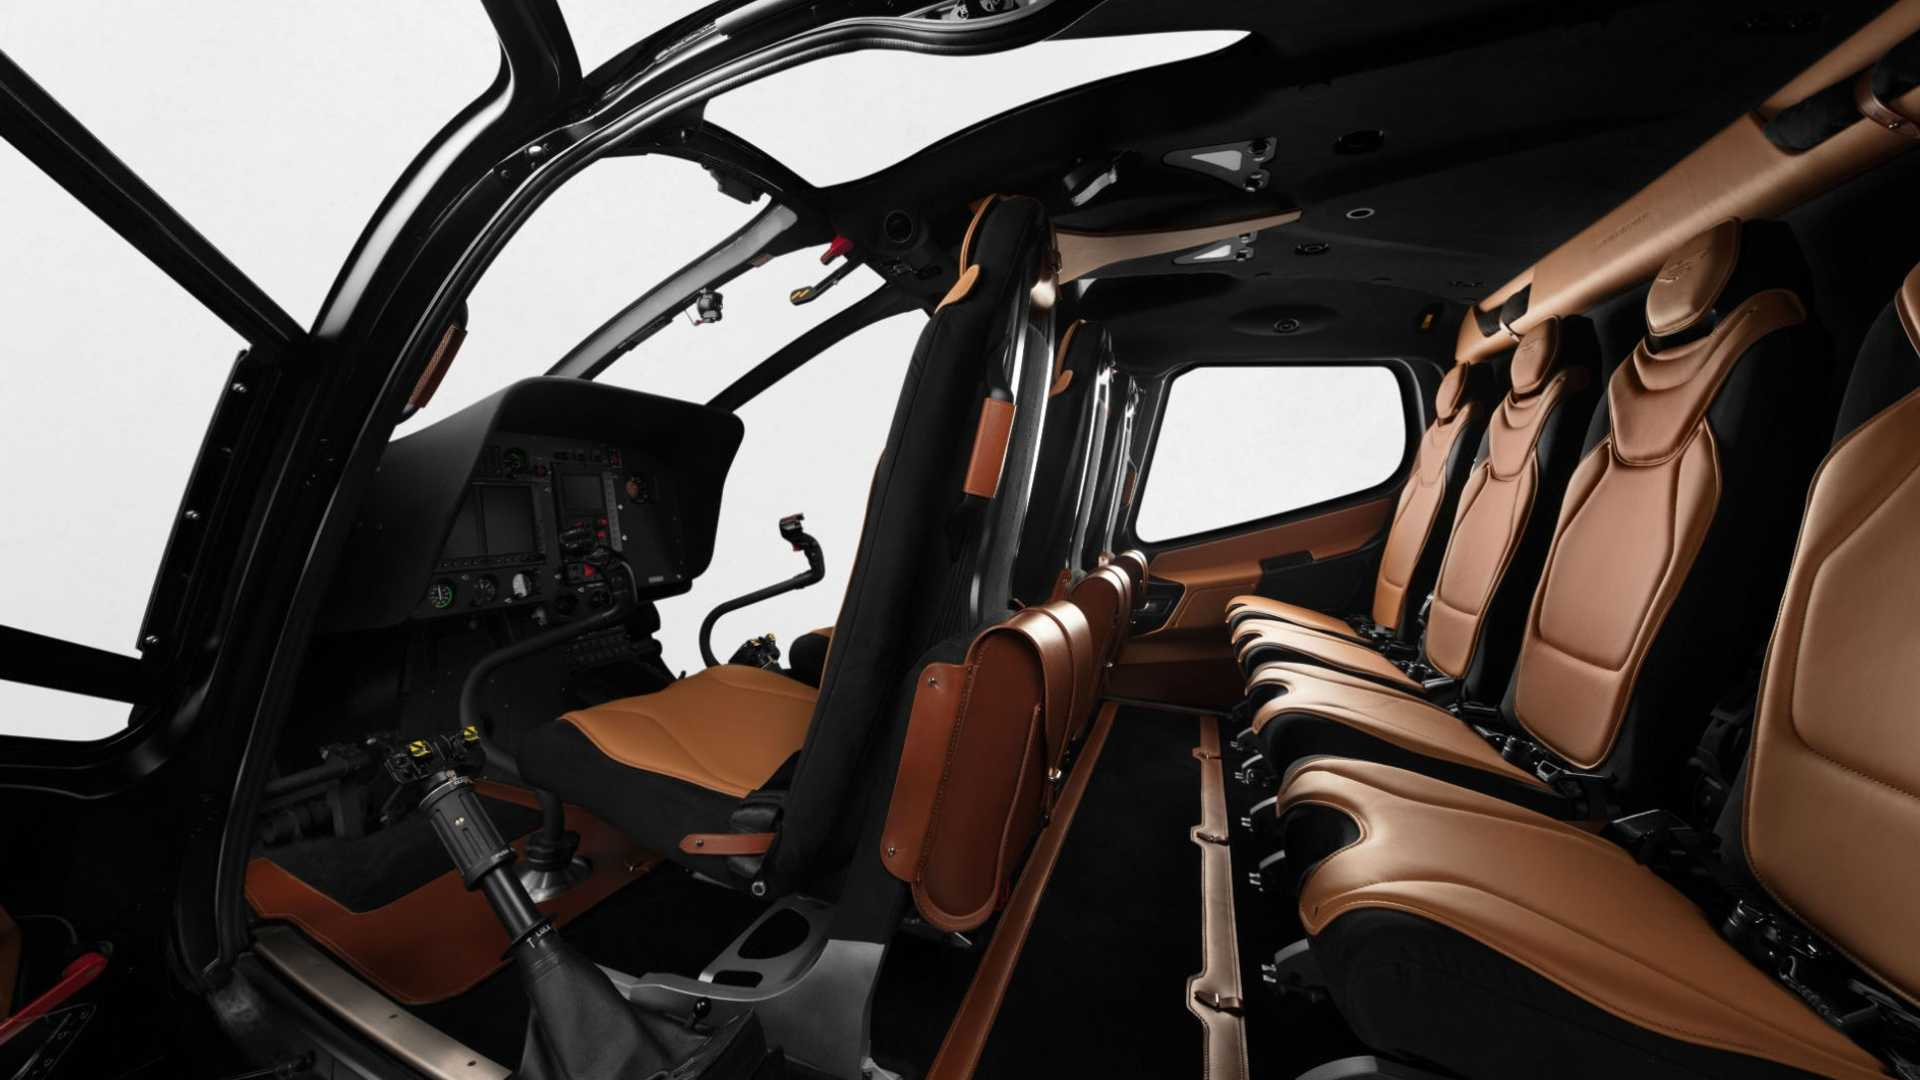 airbus-helicopters-ach130-aston-martin-db11